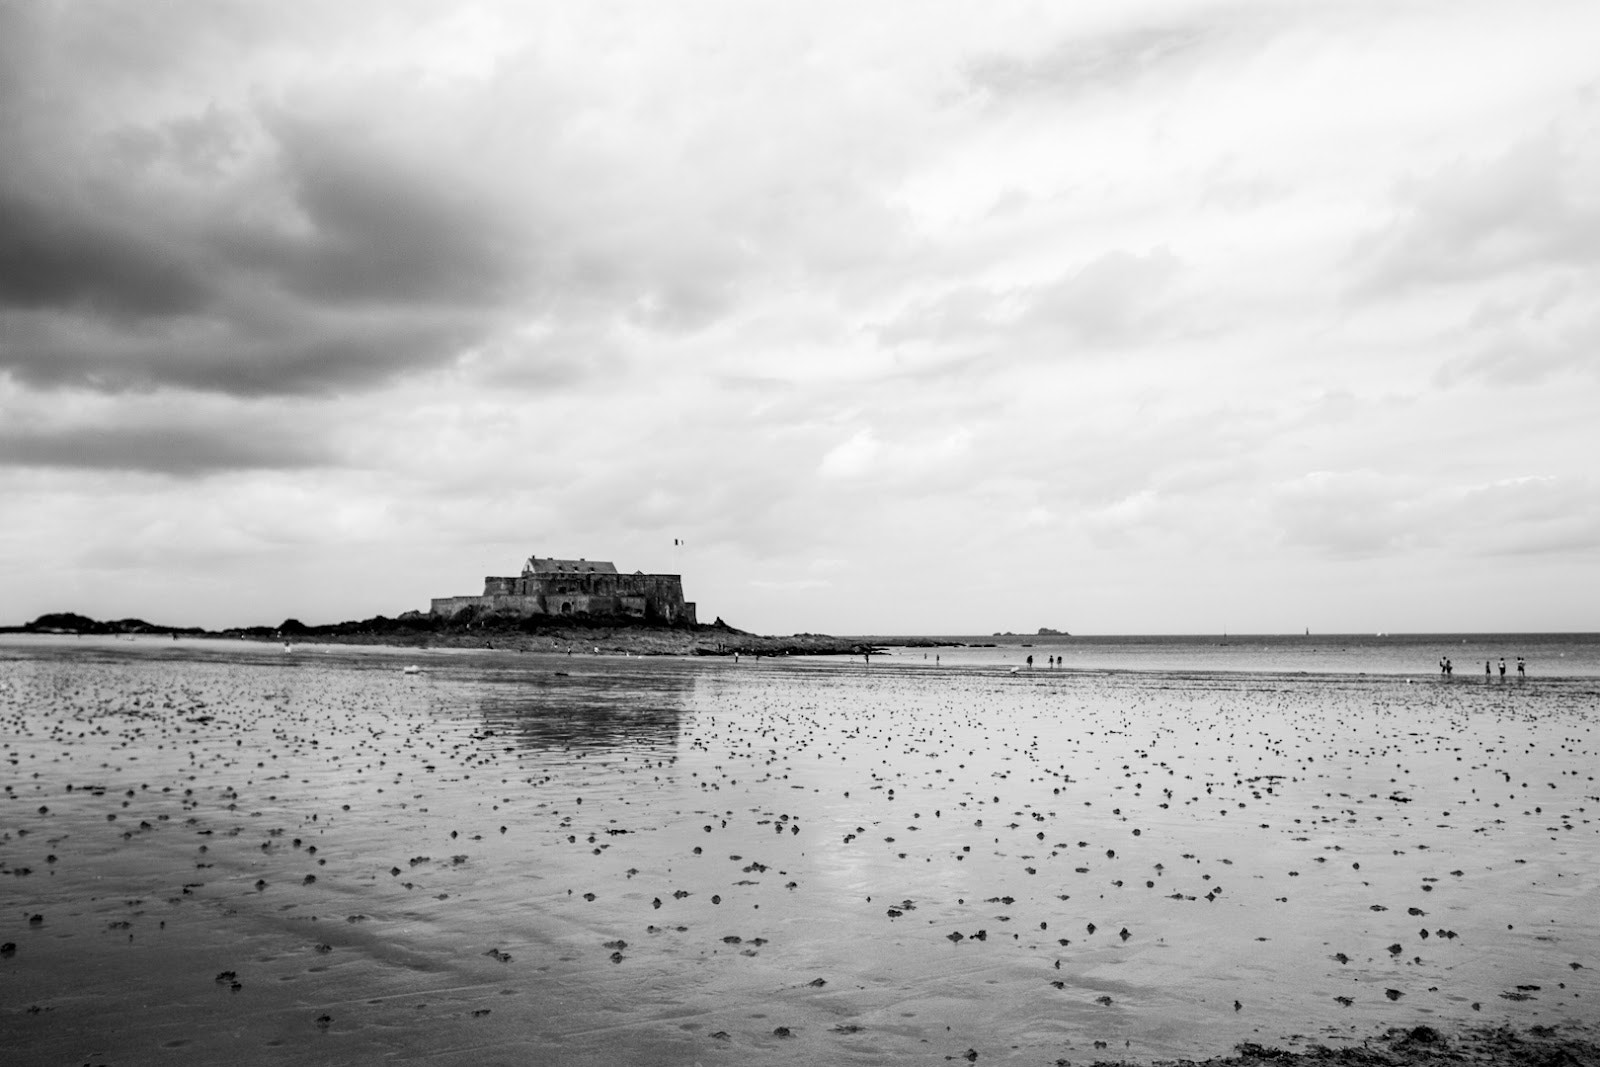 Photograph Paysages de Bretagne - Fort National, Saint-Malo, Bretagne, France by L. G. - luigig75 on 500px